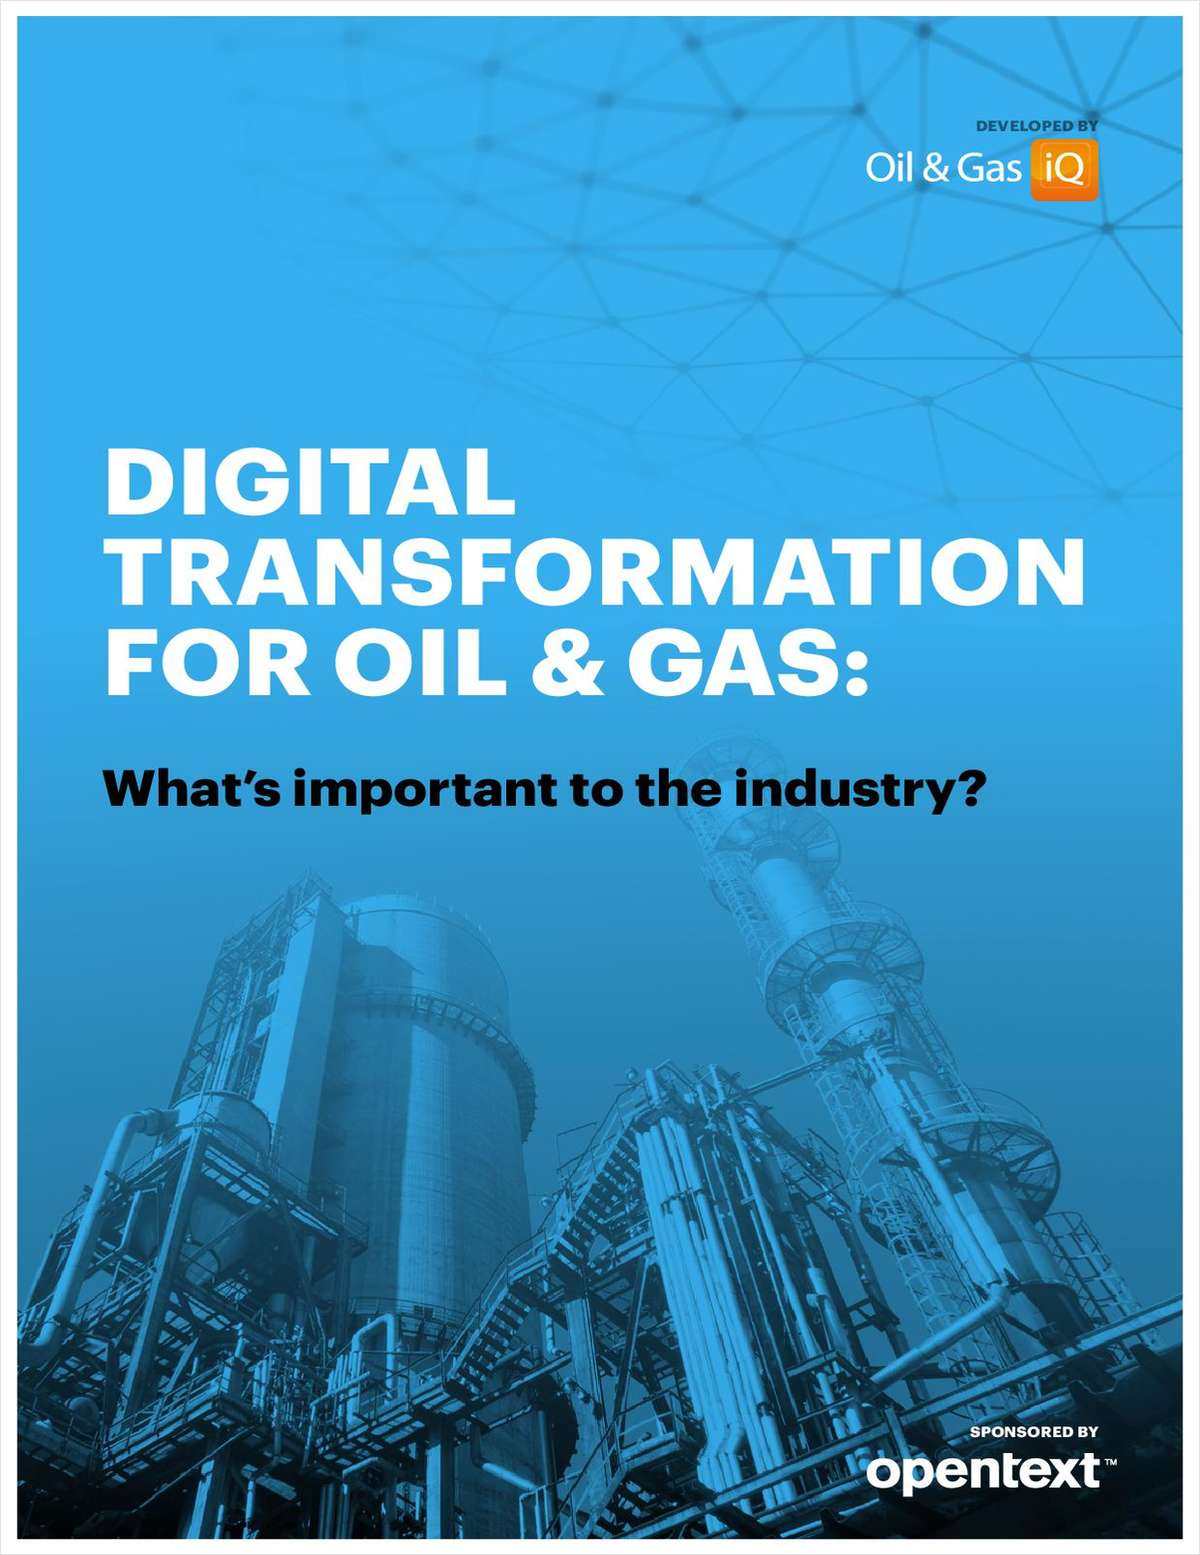 Digital Transformation for Oil & Gas